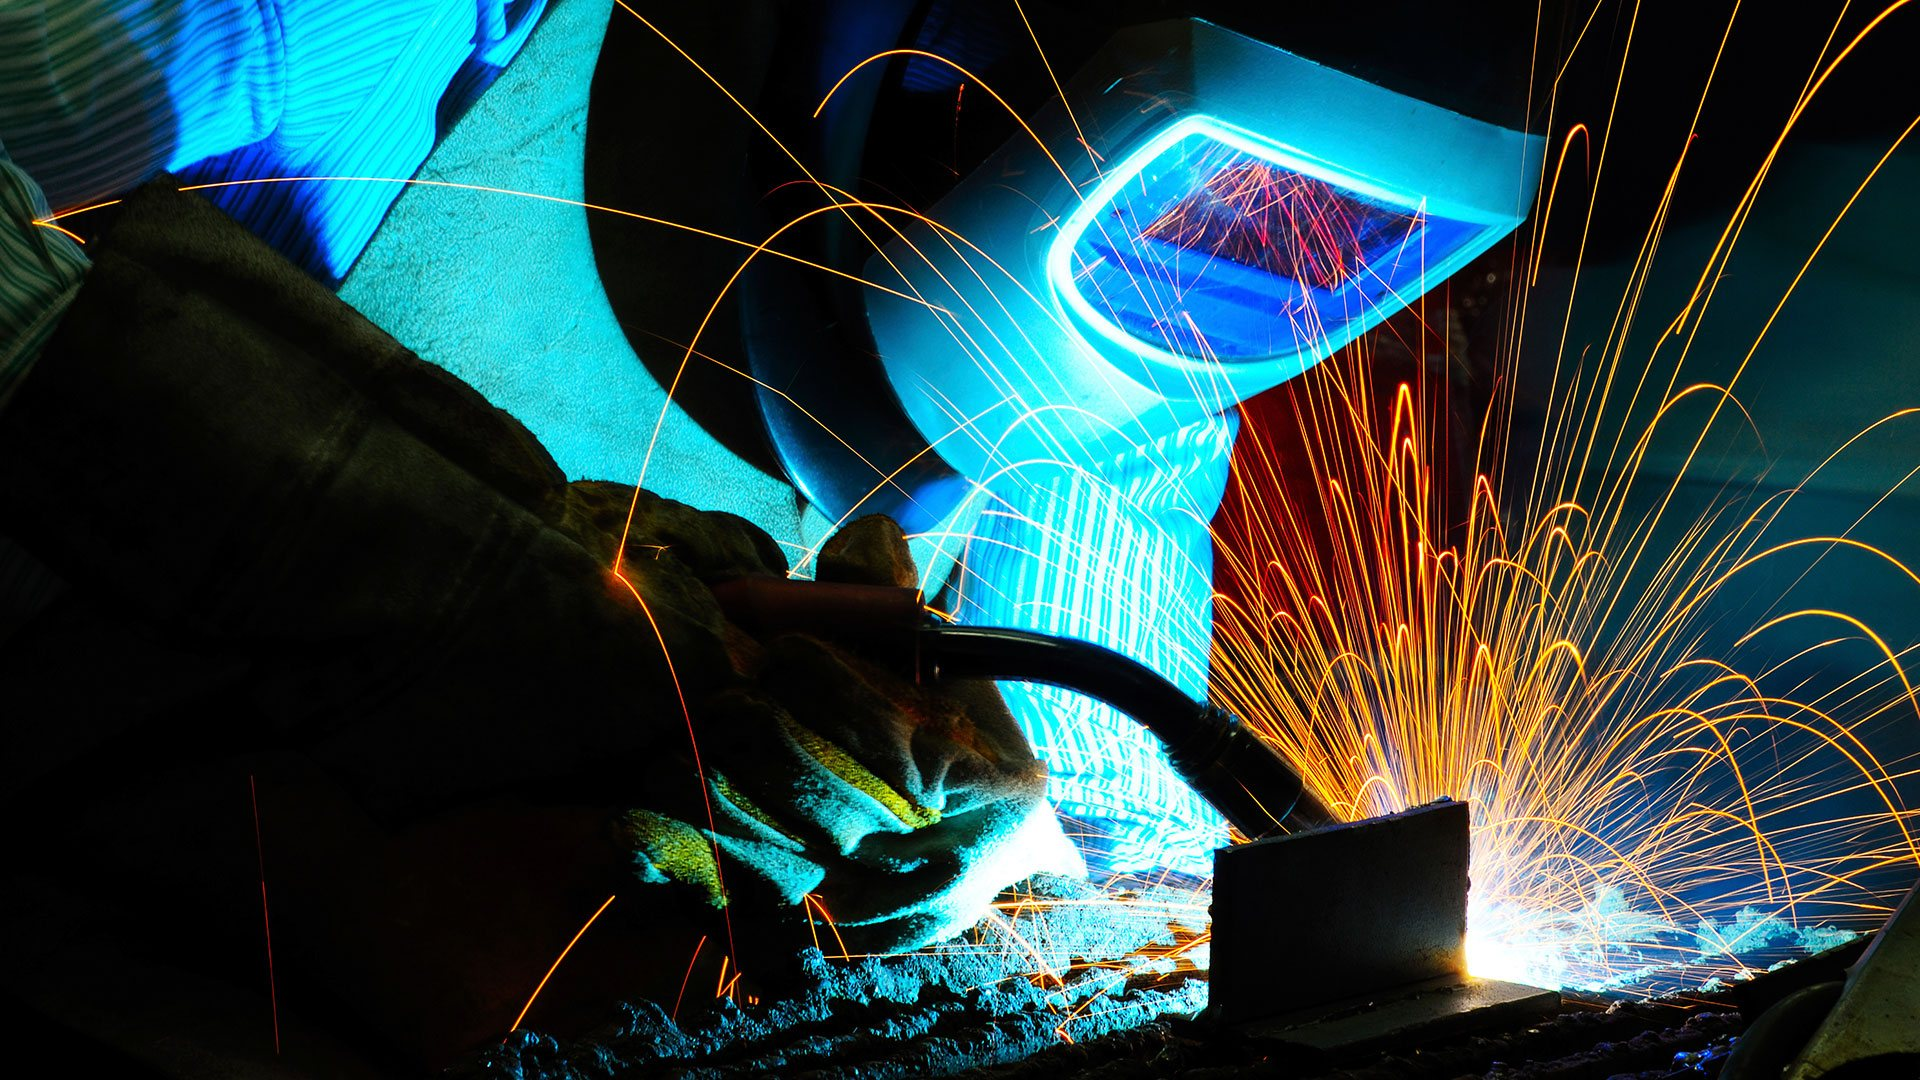 Williamsport Certified Welders, CNC Machining and Metal Fabrication